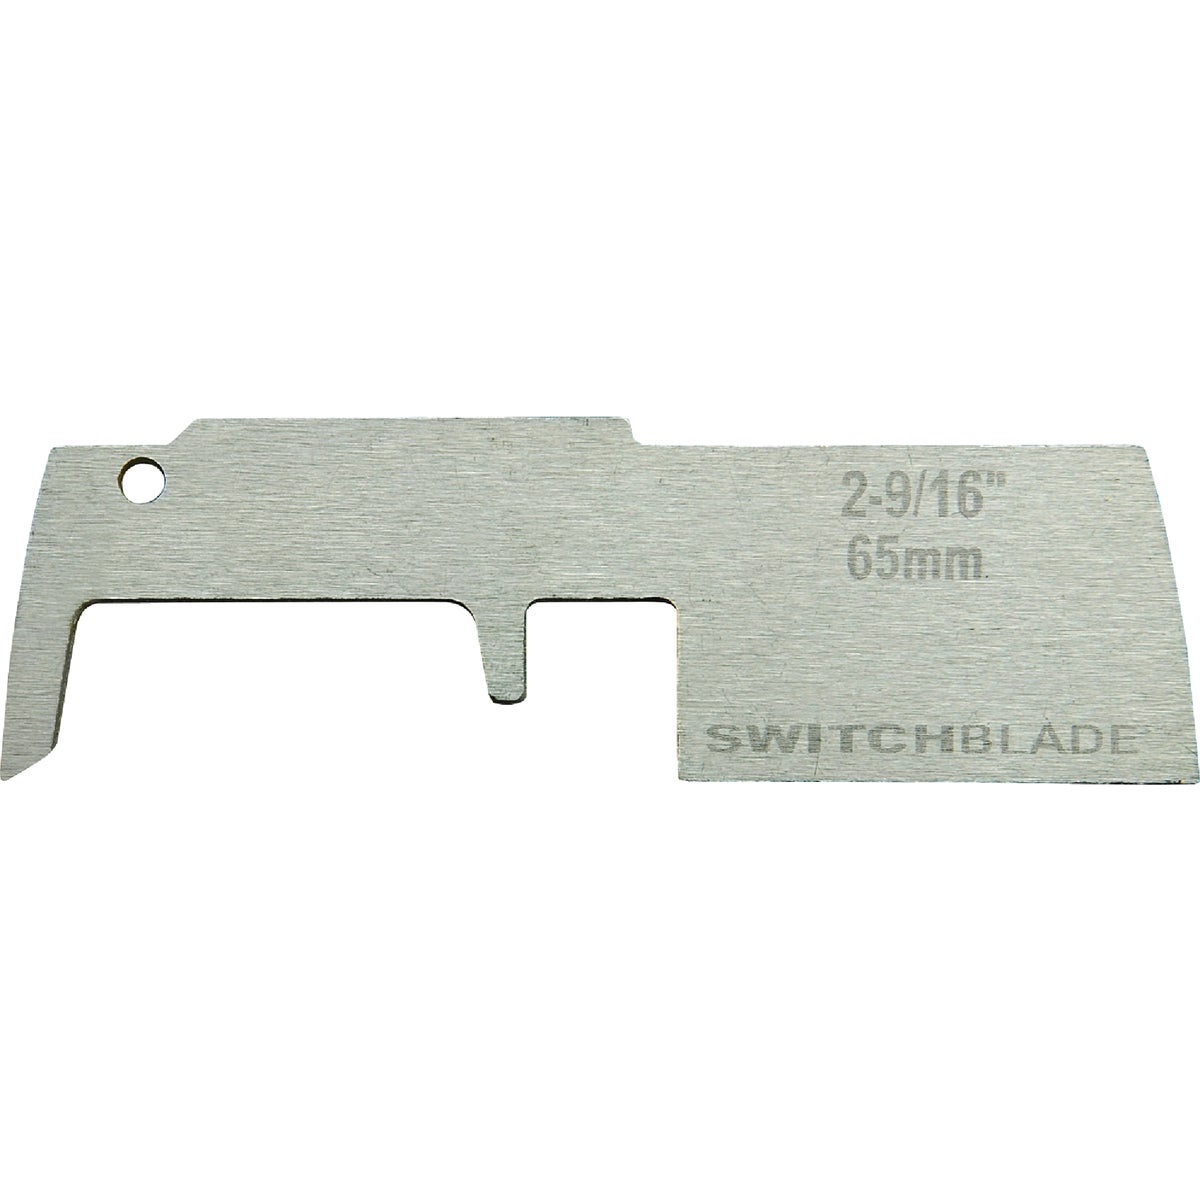 "1PK 2-9/16"" SWITCHBLADE - 48255450 by Milwaukee Accessory"